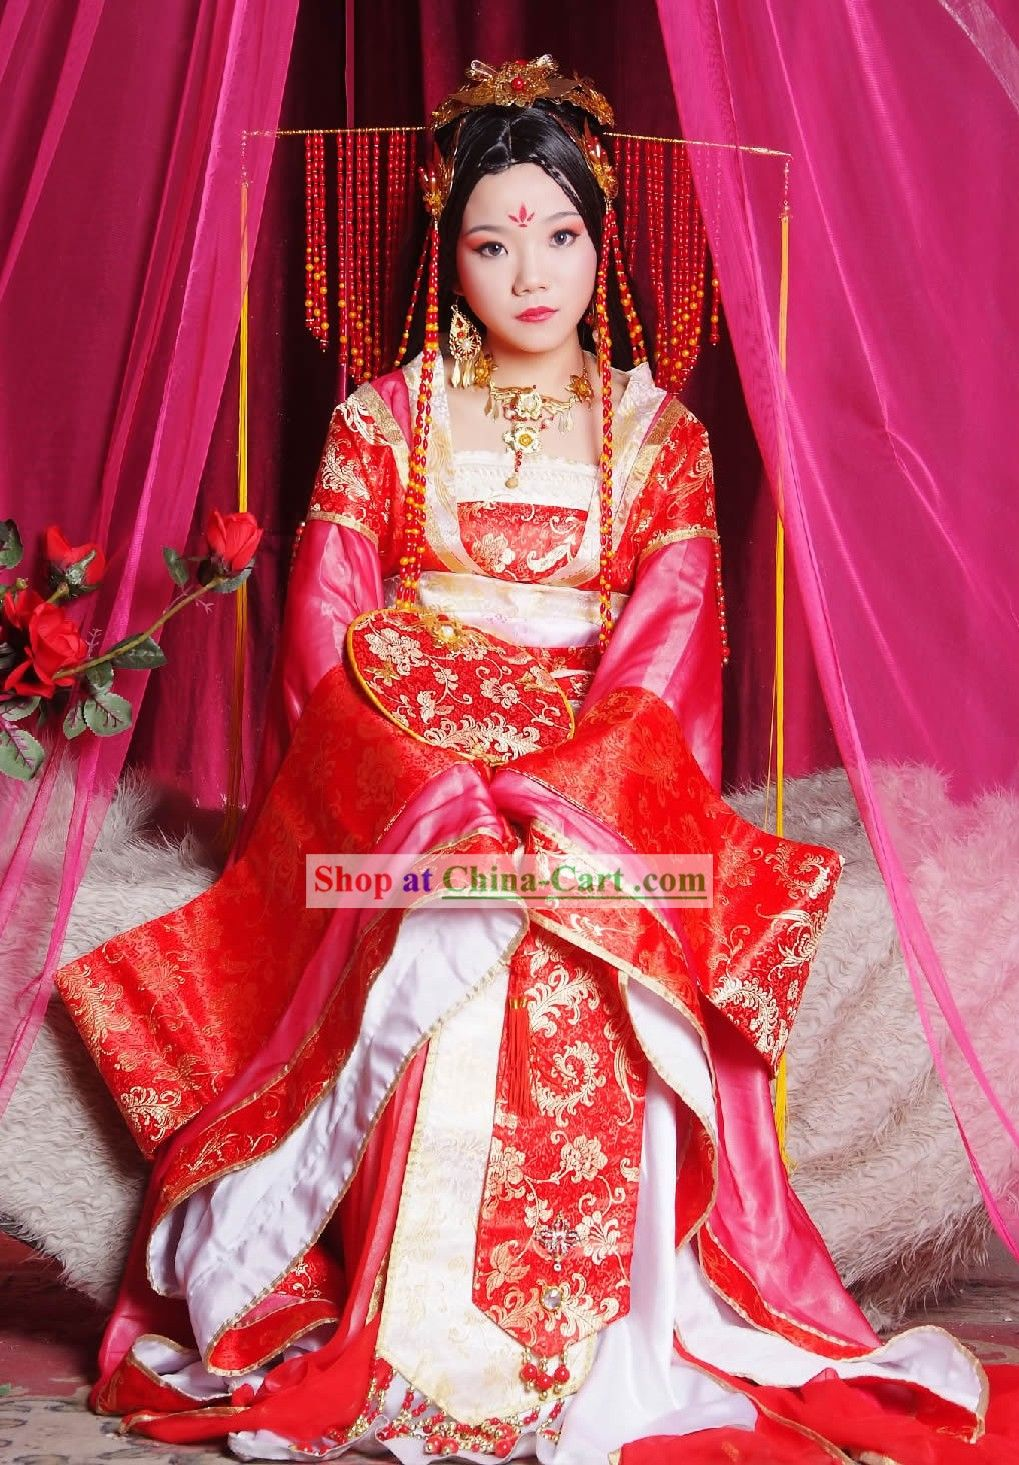 traditional+chinese+clothing | traditional chinese wedding dress